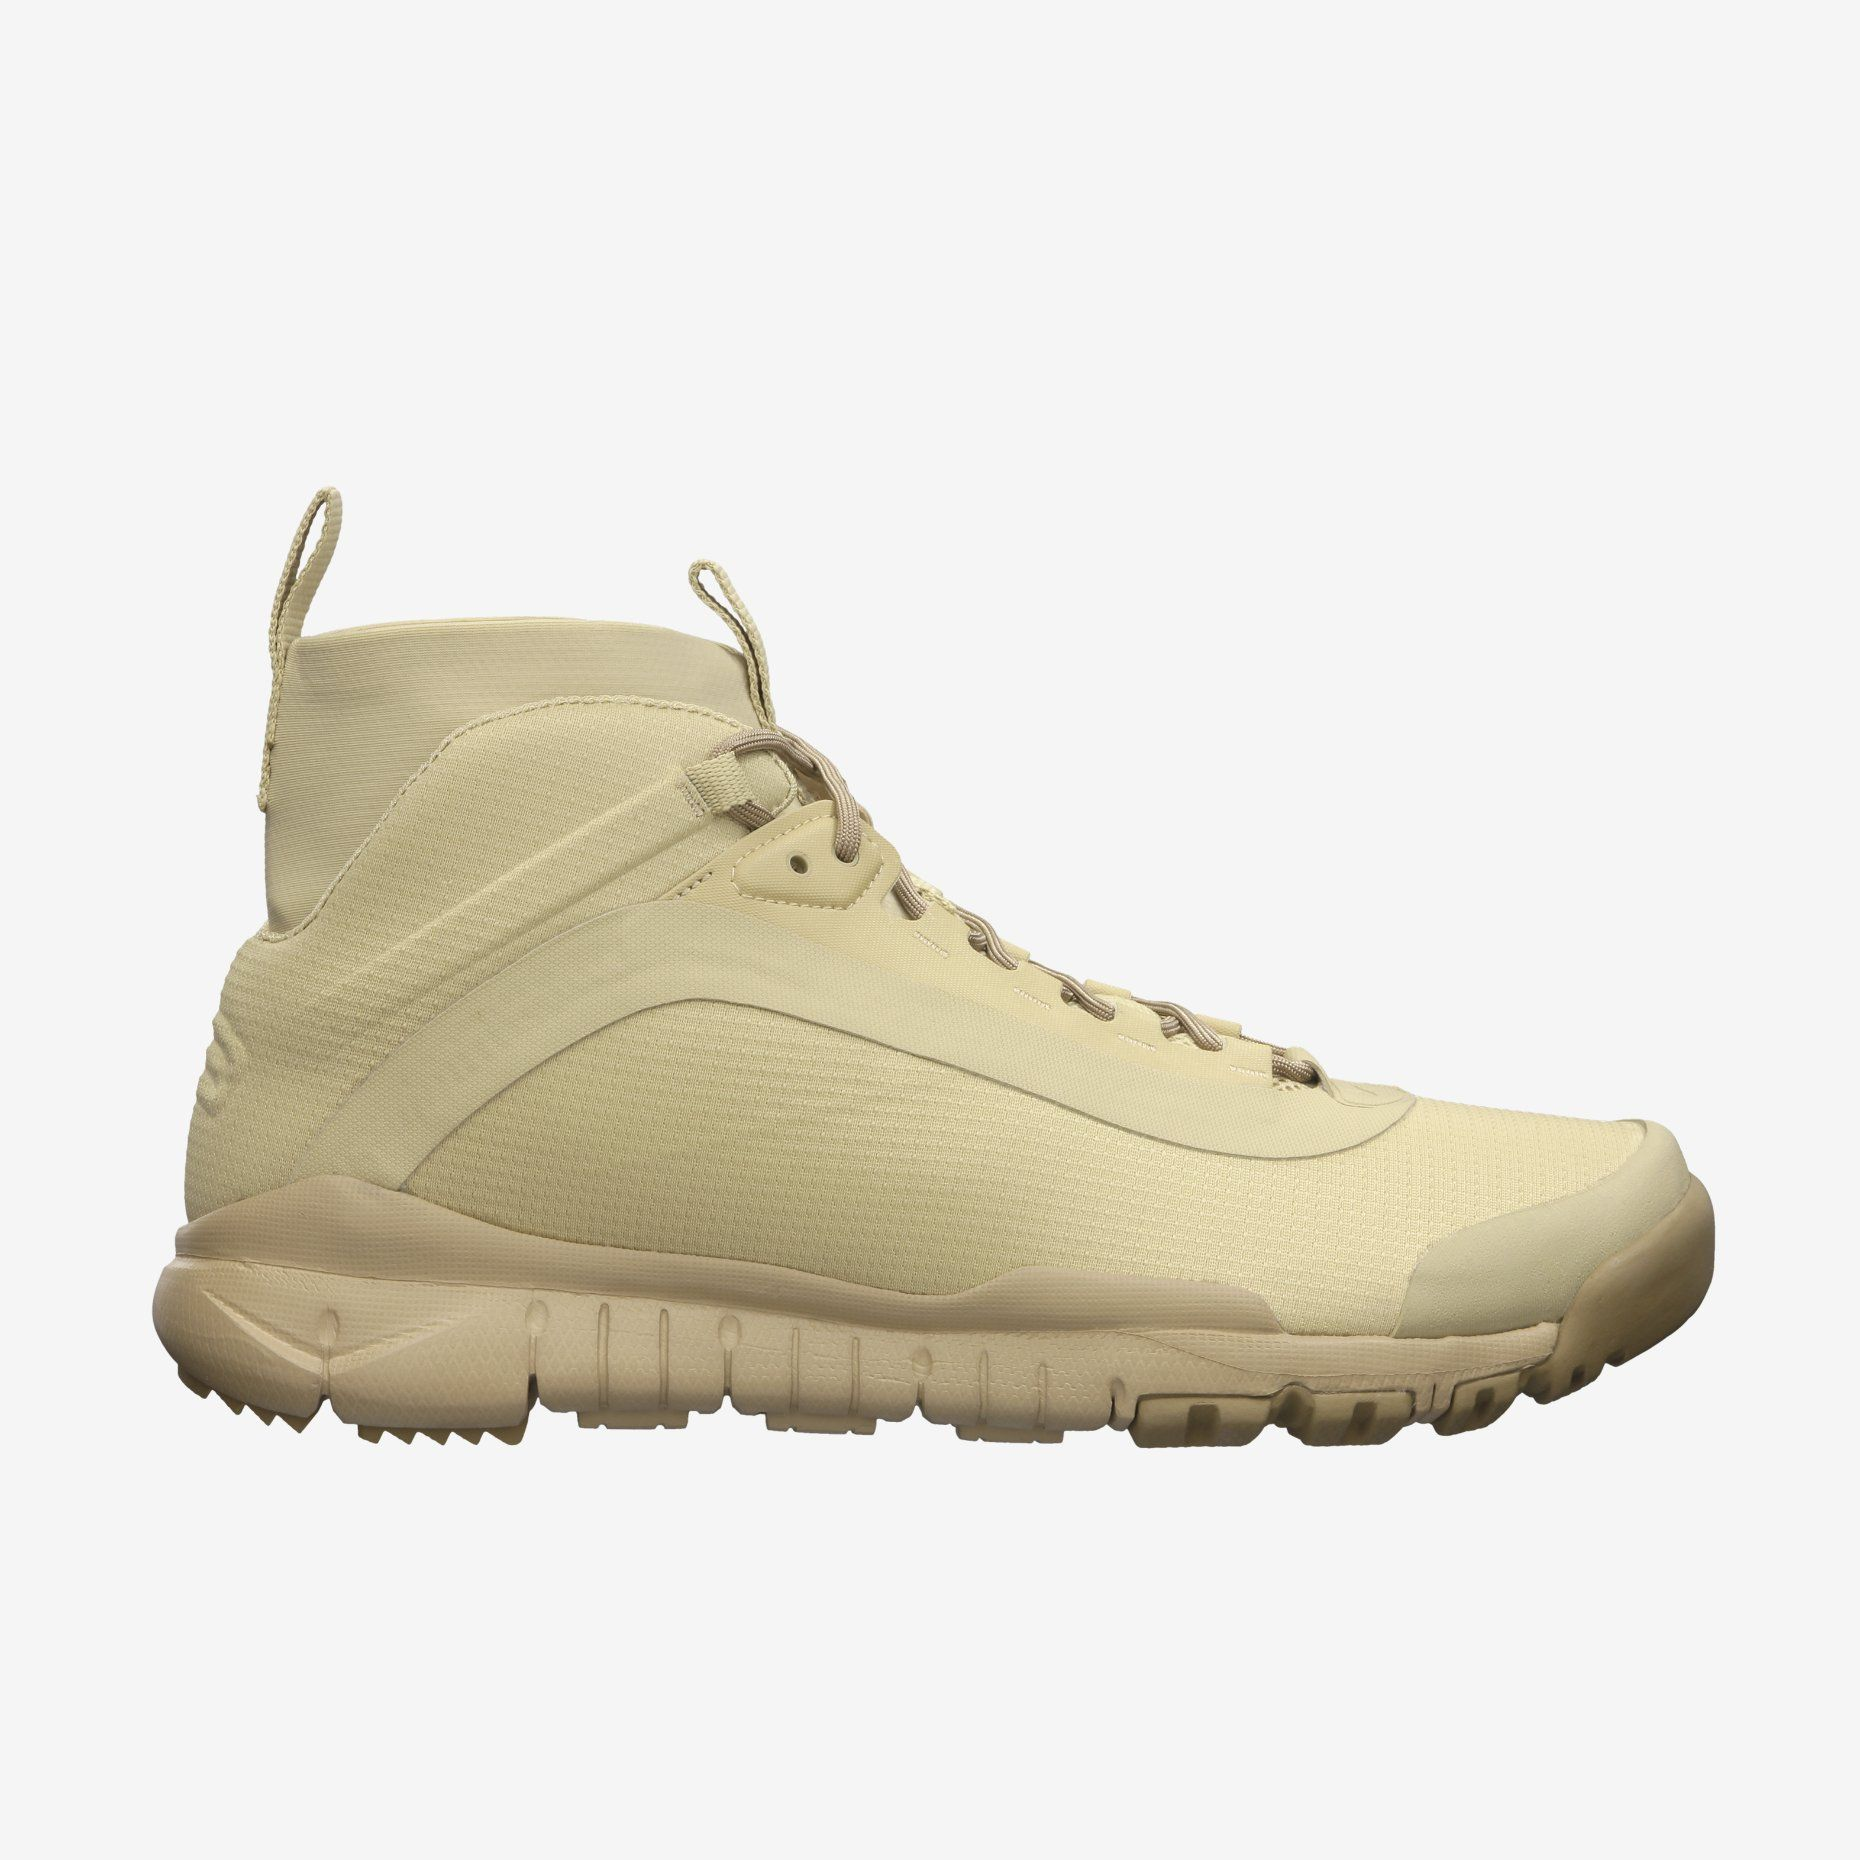 53a4dc94448a Nike SFB Trainer Men s Boot. Nike Store